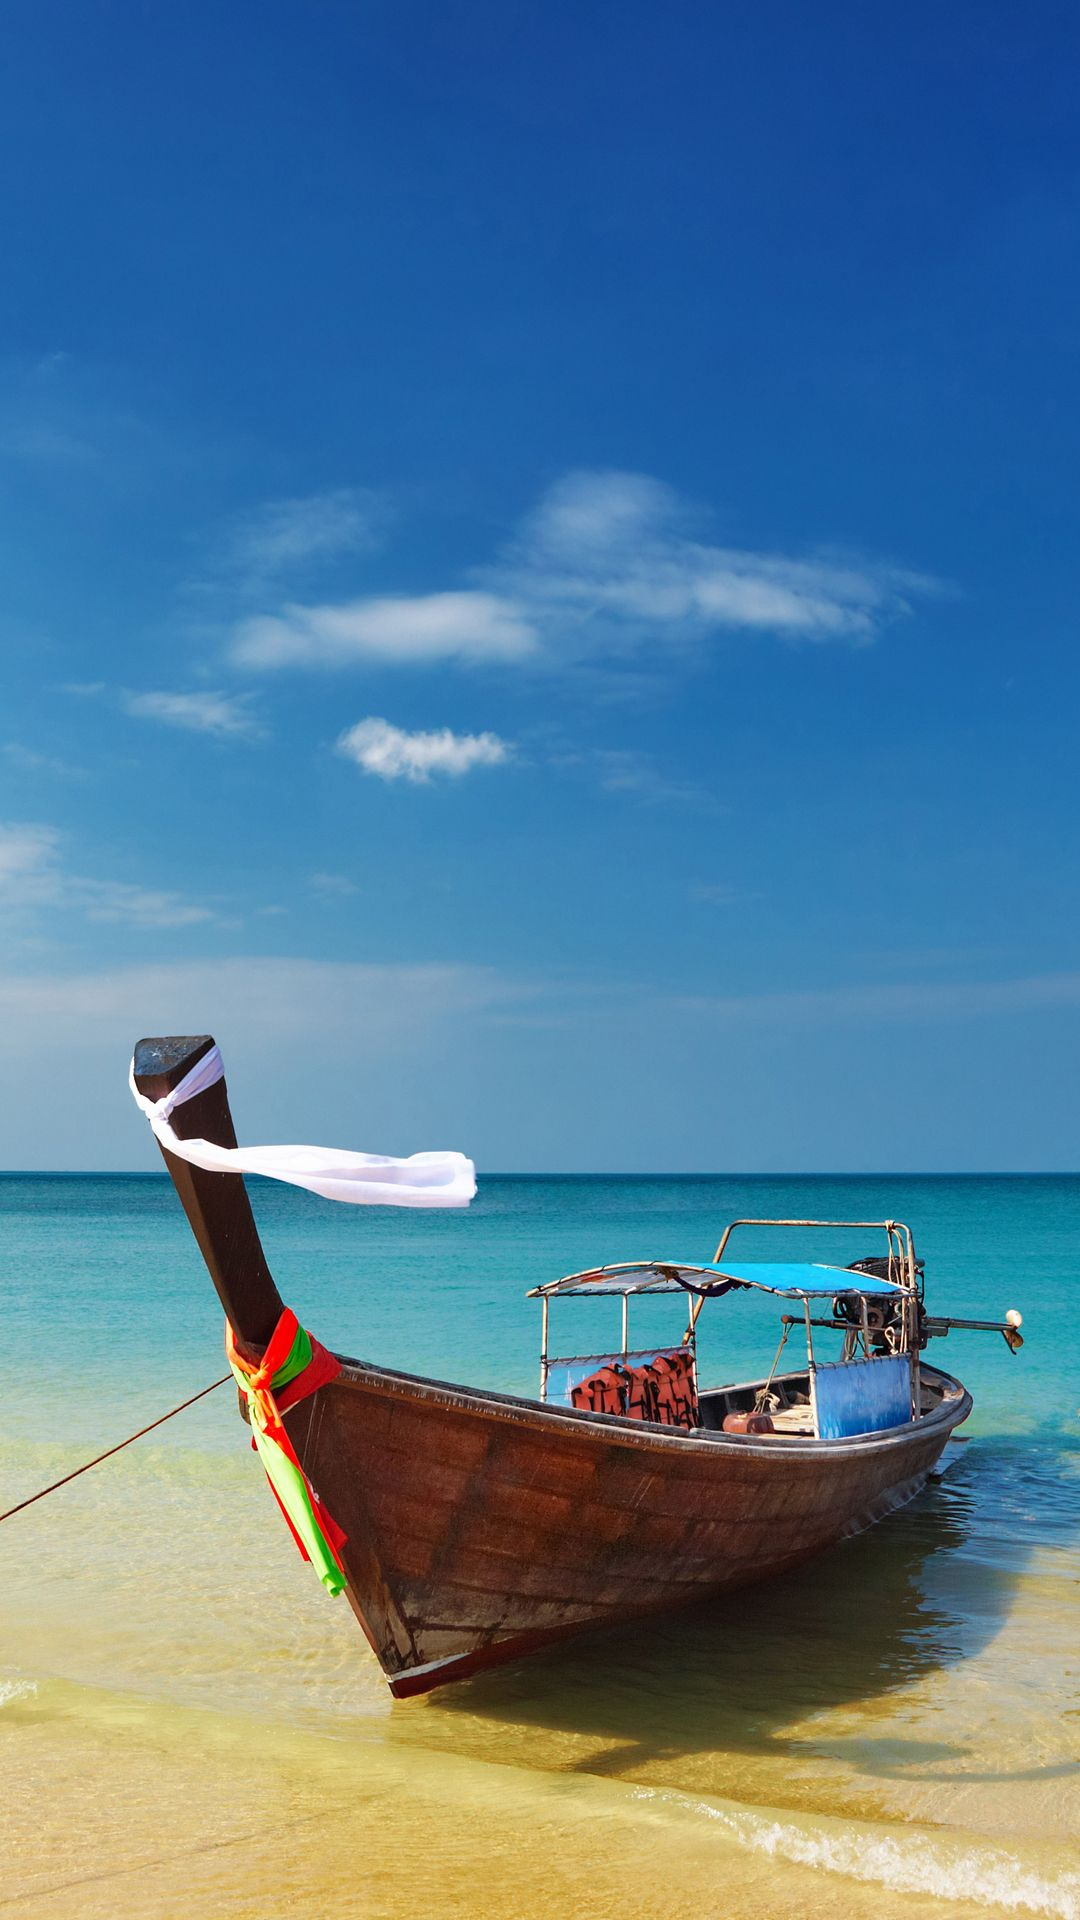 Thailand Beach Shore Boat Android Wallpaper Androide